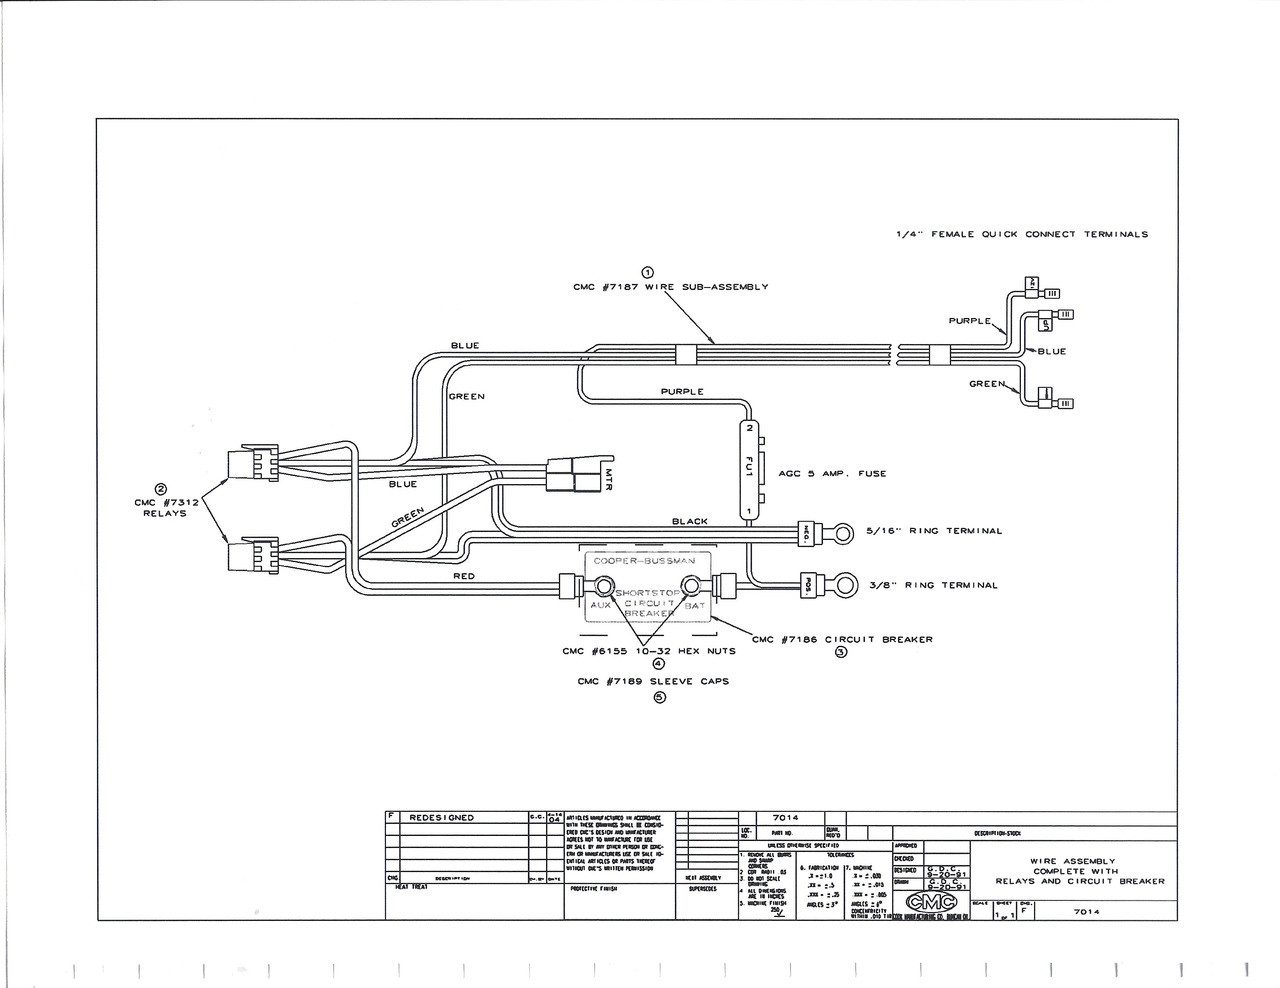 medium resolution of wire assembly cmc 7014g cmc tilt and trim wiring harness cmc wiring harness